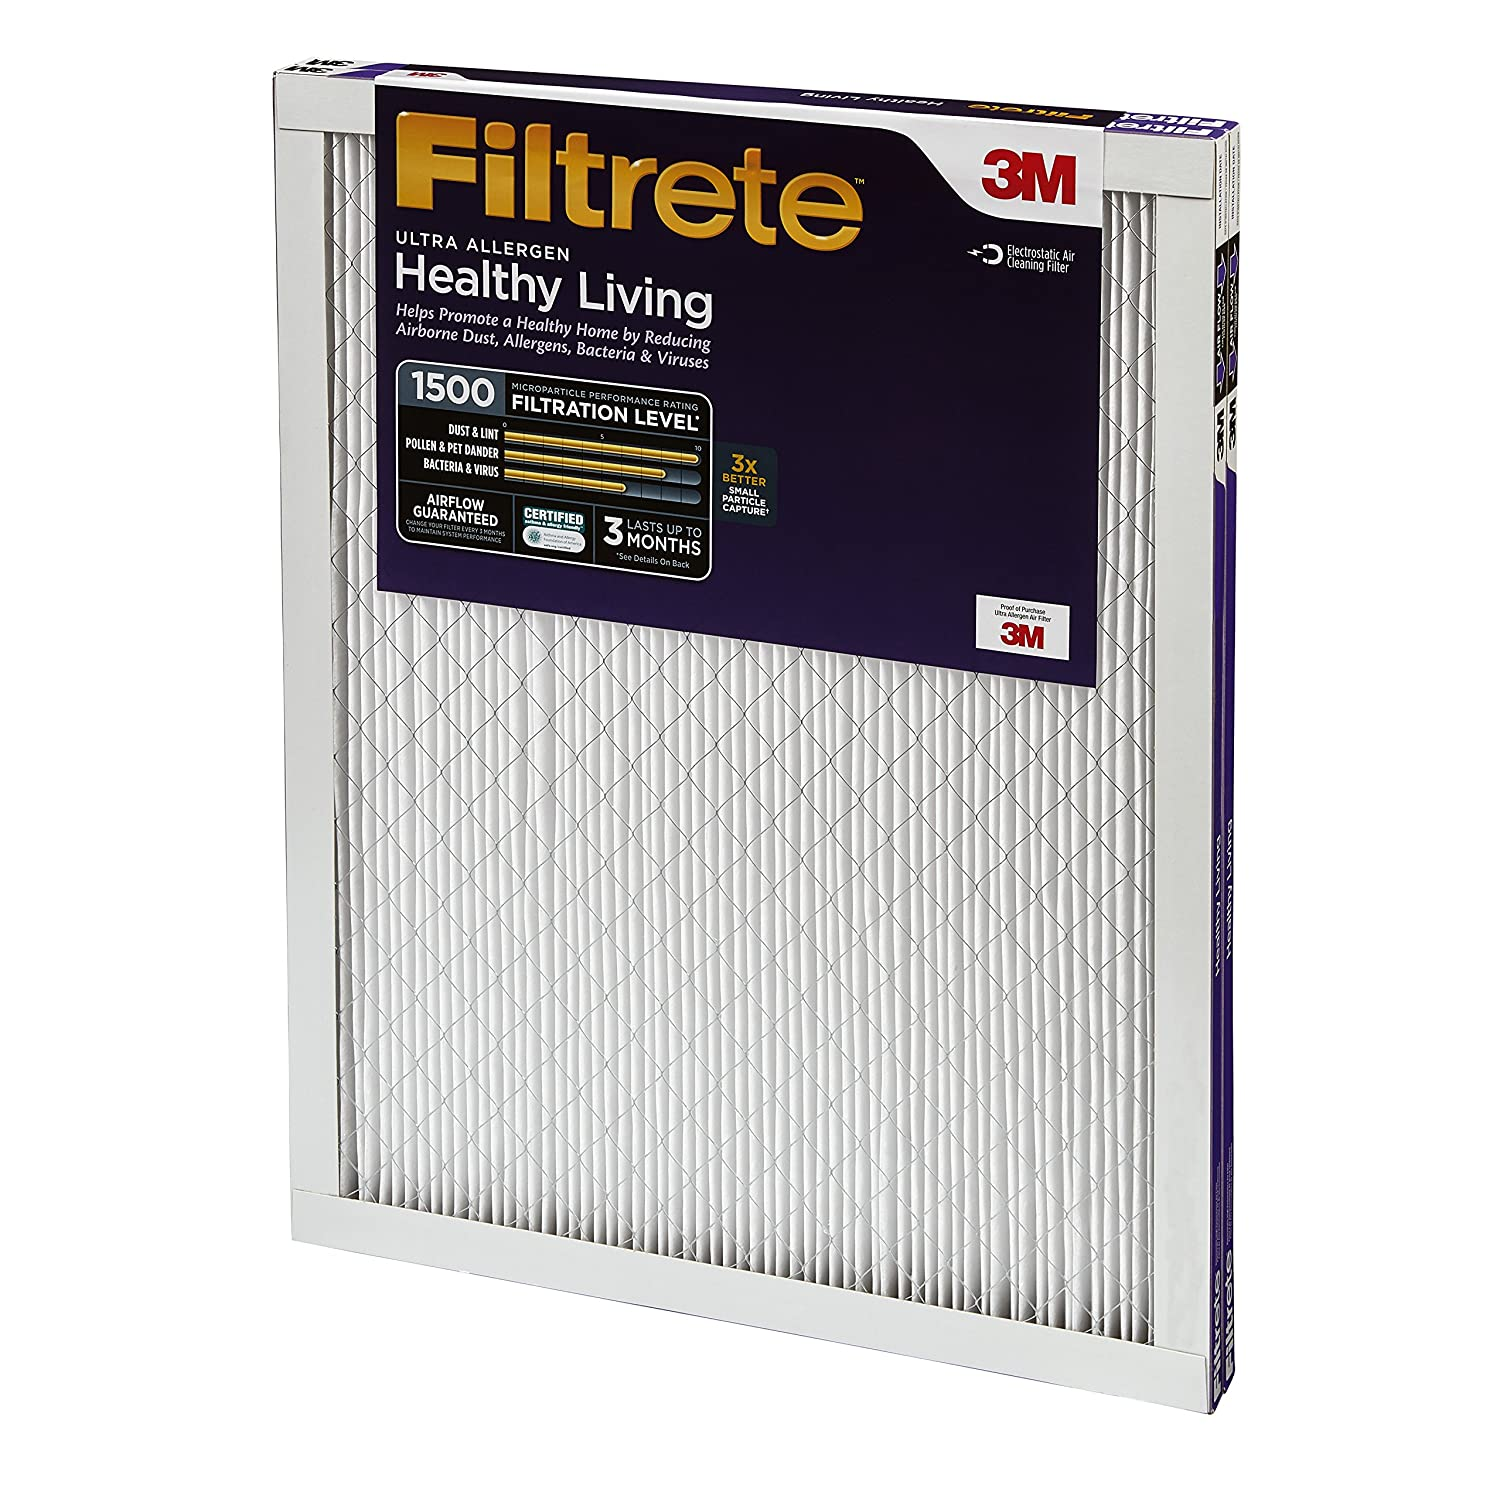 Amazon.com: Filtrete Healthy Living Ultra Allergen Reduction AC Furnace Air  Filter, MPR 1500, 12 x 24 x 1, 2-Pack: Home Improvement